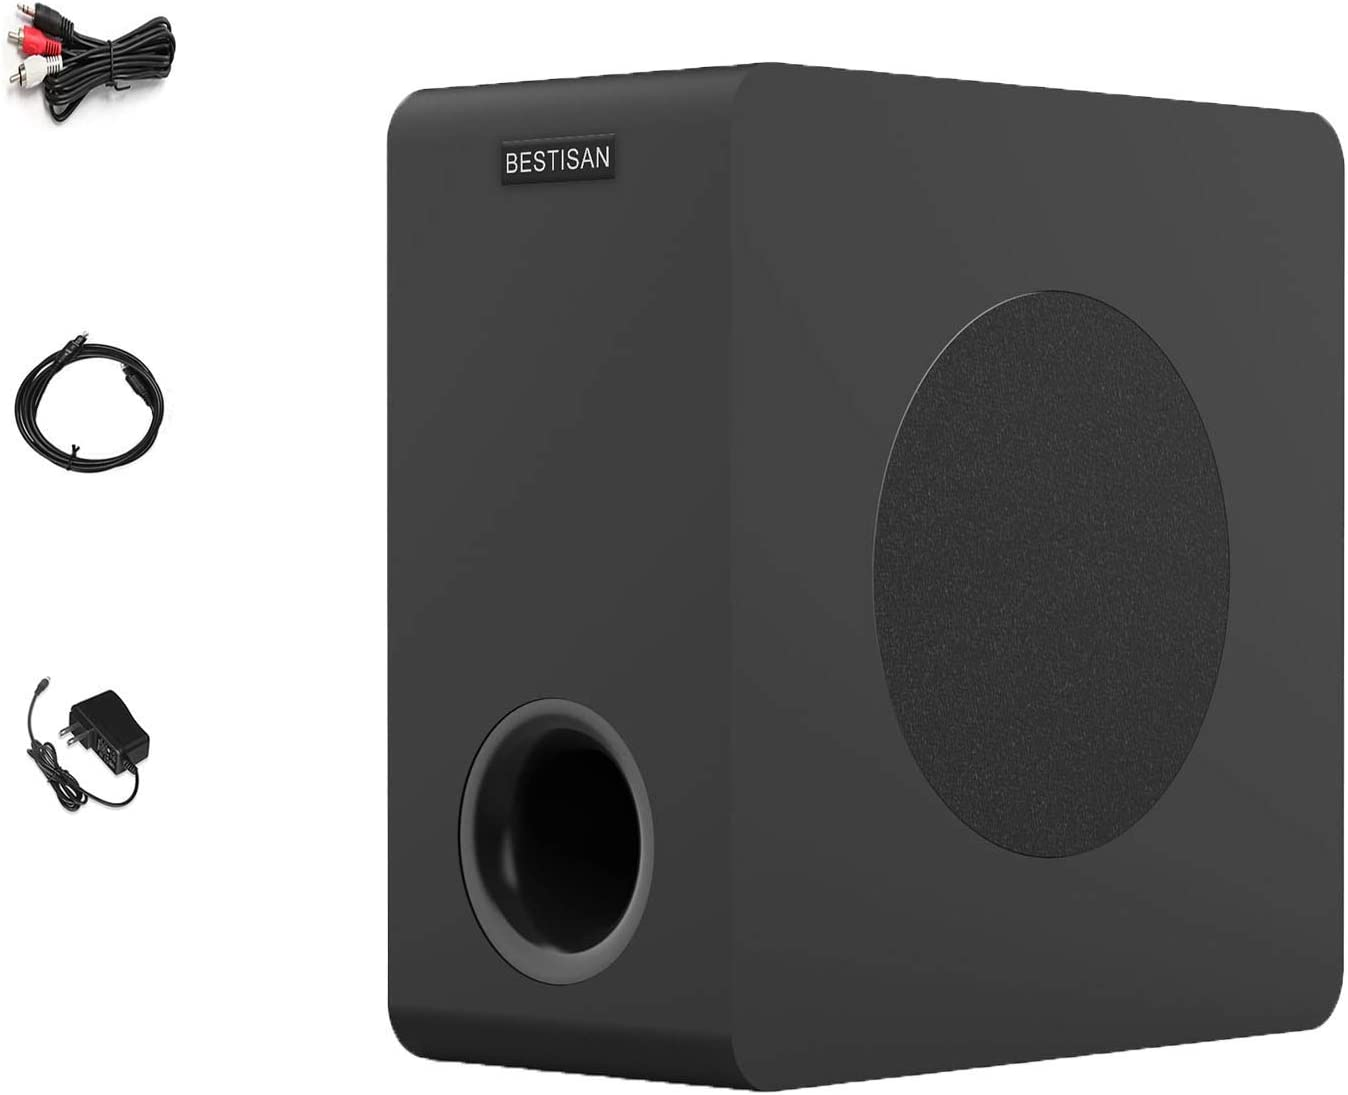 BESTISAN Powered unisex Tucson Mall Subwoofer Compact for Home Audio The